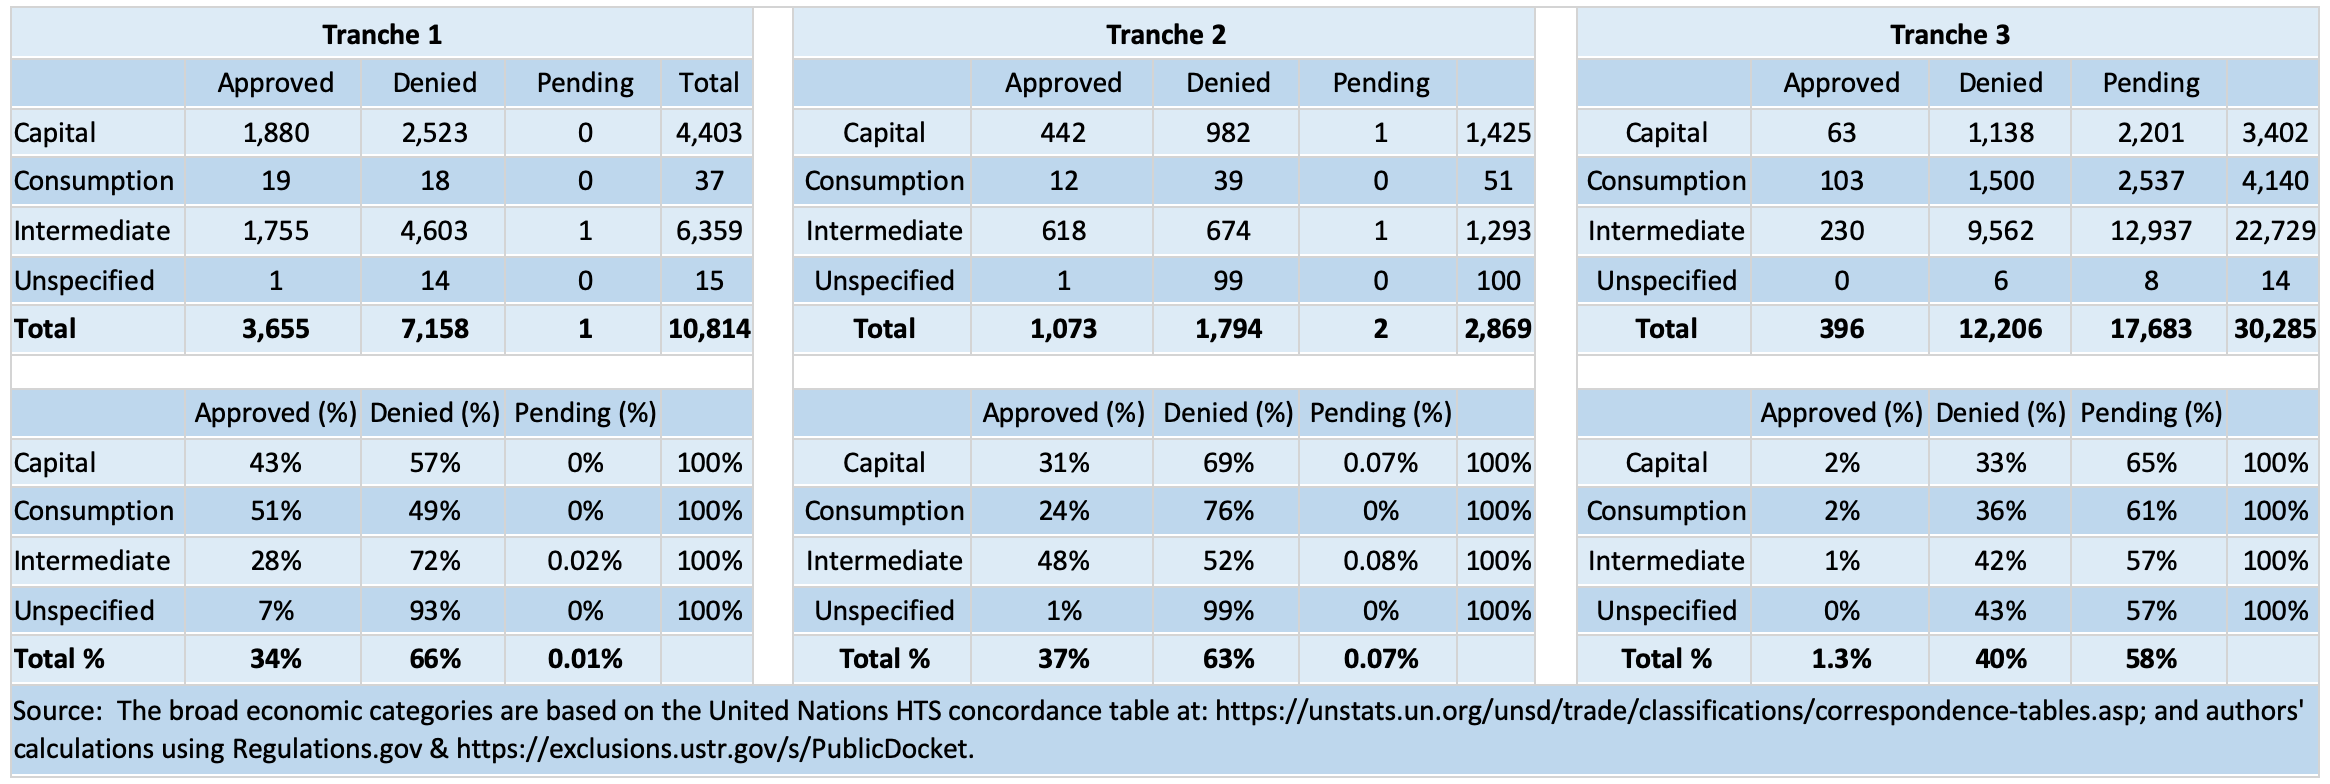 Source: The broad economic categories are based on the United Nations HTS concordance table and authors' calculations using Regulations.gov and the USTR Exclusions Portal.